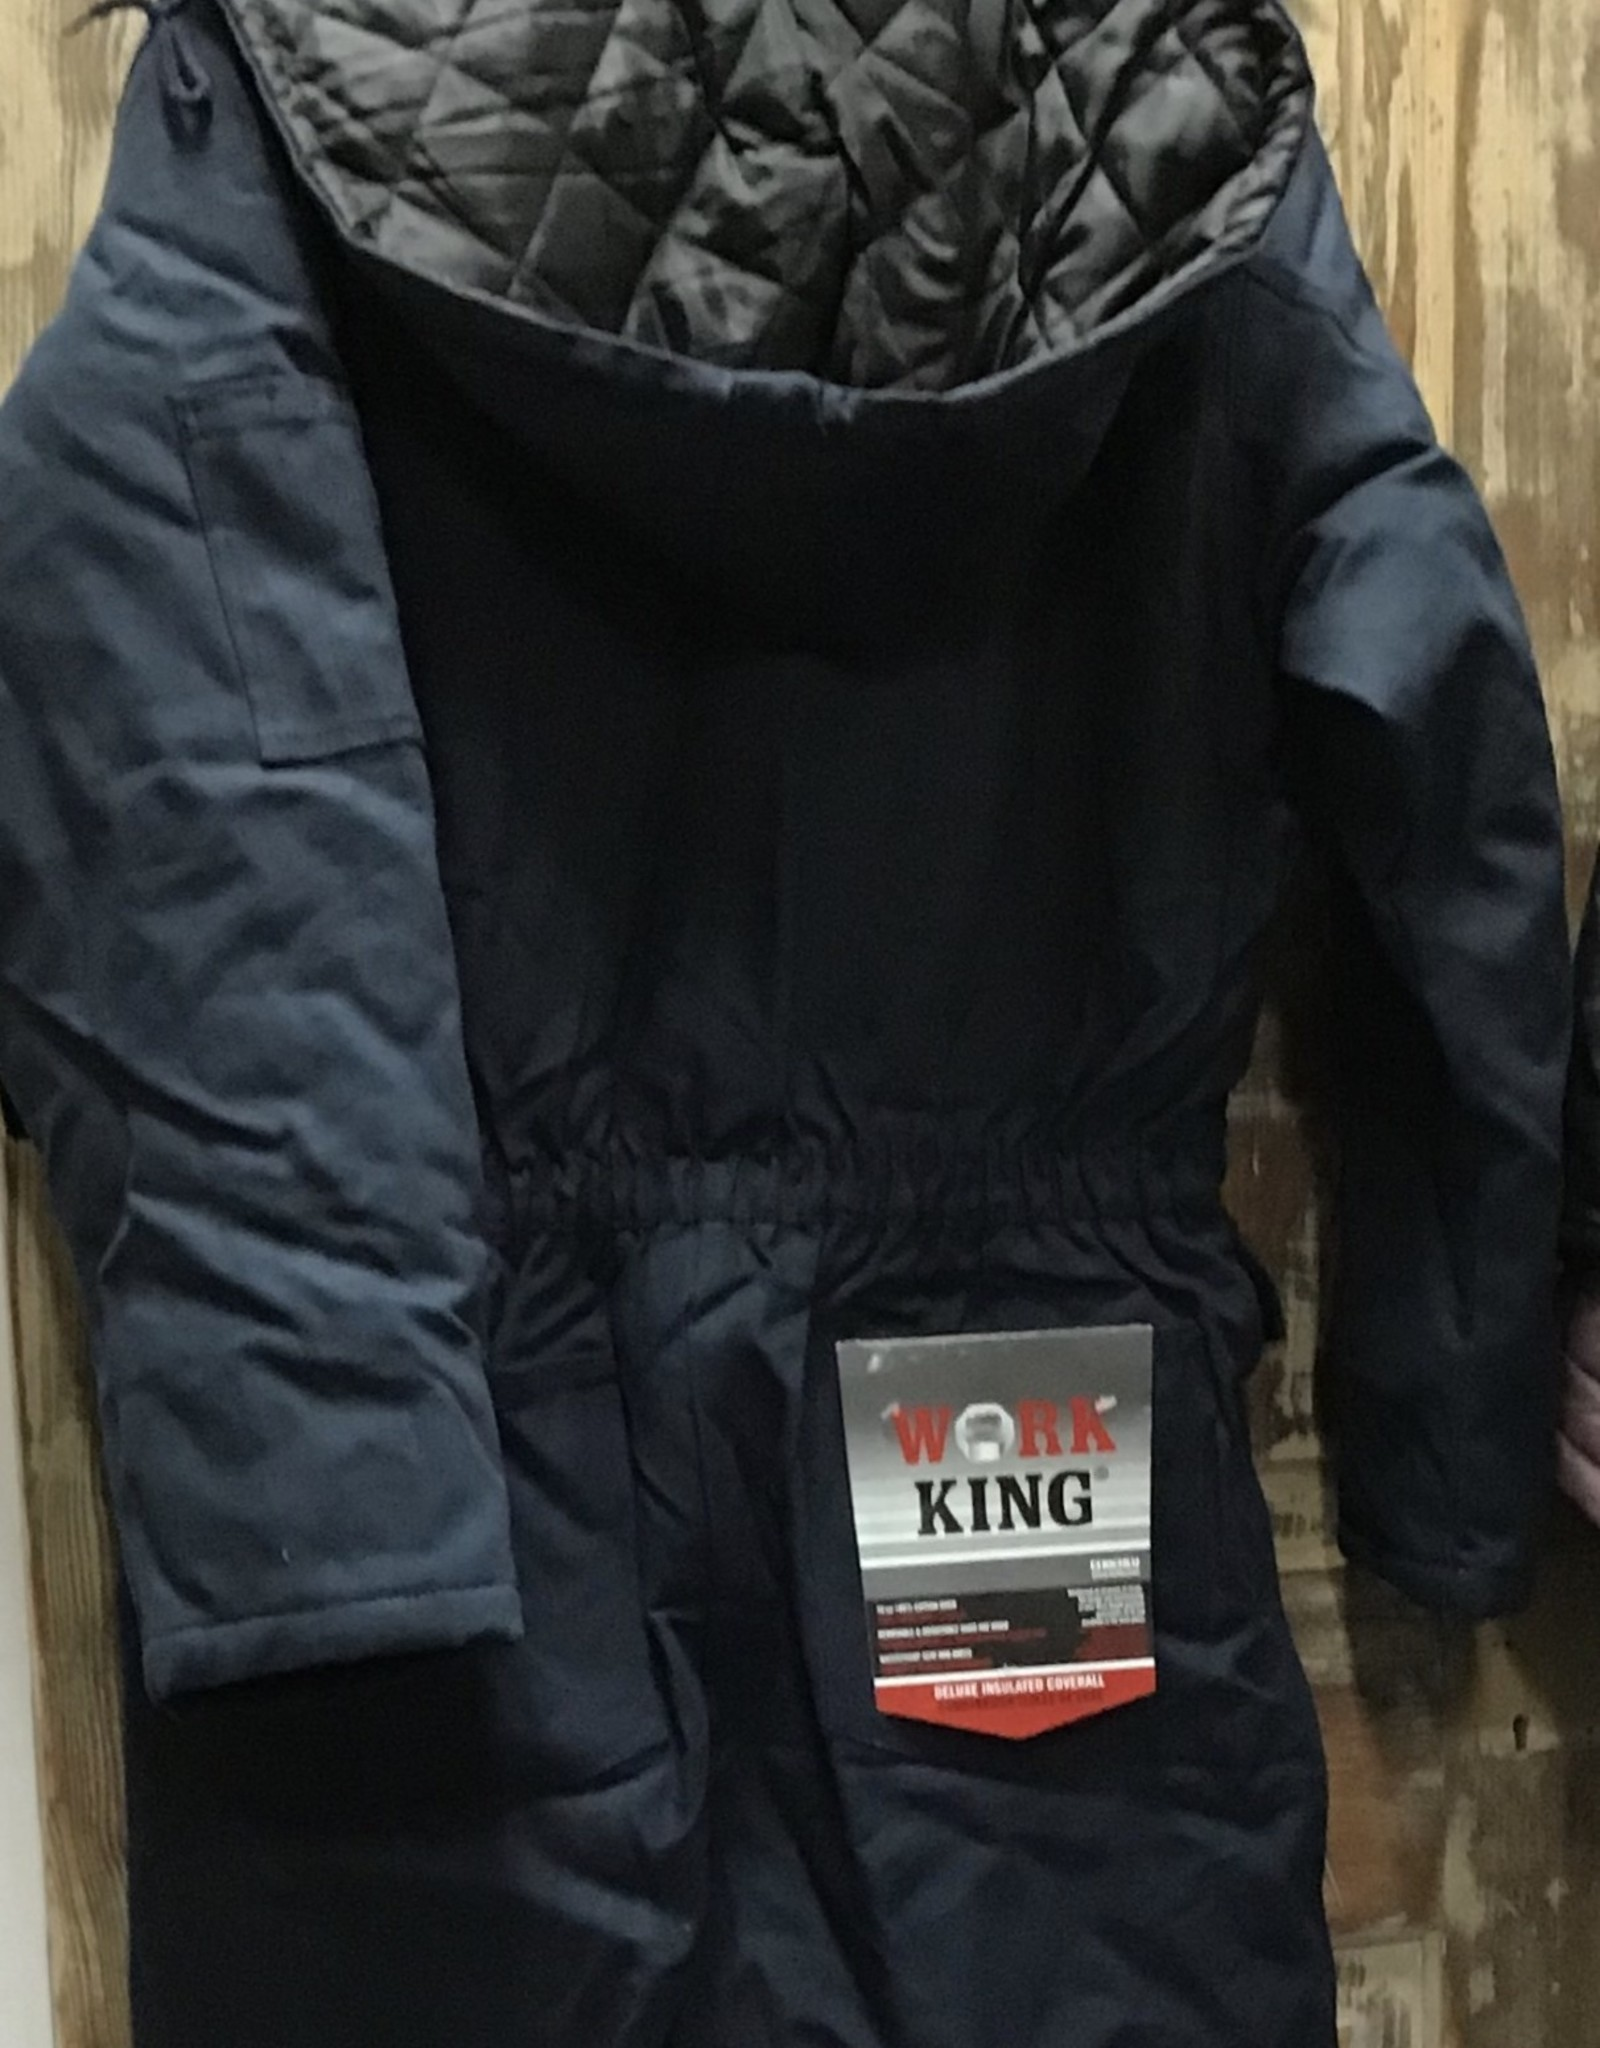 Work King Work King 7760 Insulated Coverall Men's